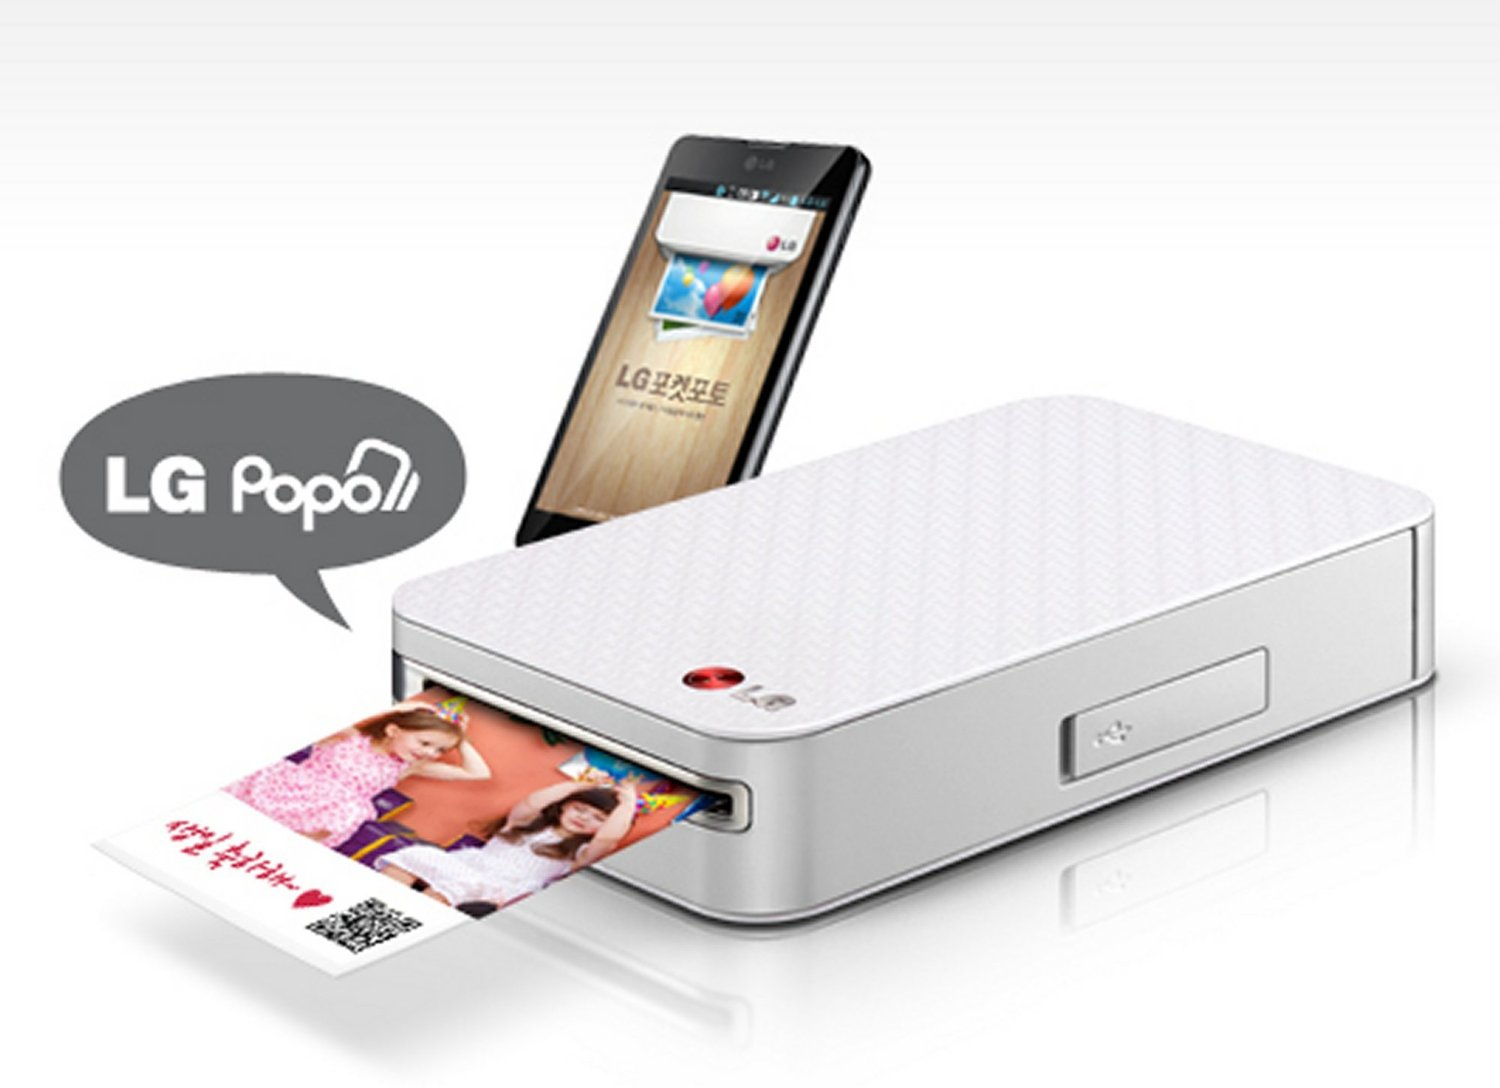 ... PD221 SILVER Mini Mobile Printer for Android Smartphone: Electronics